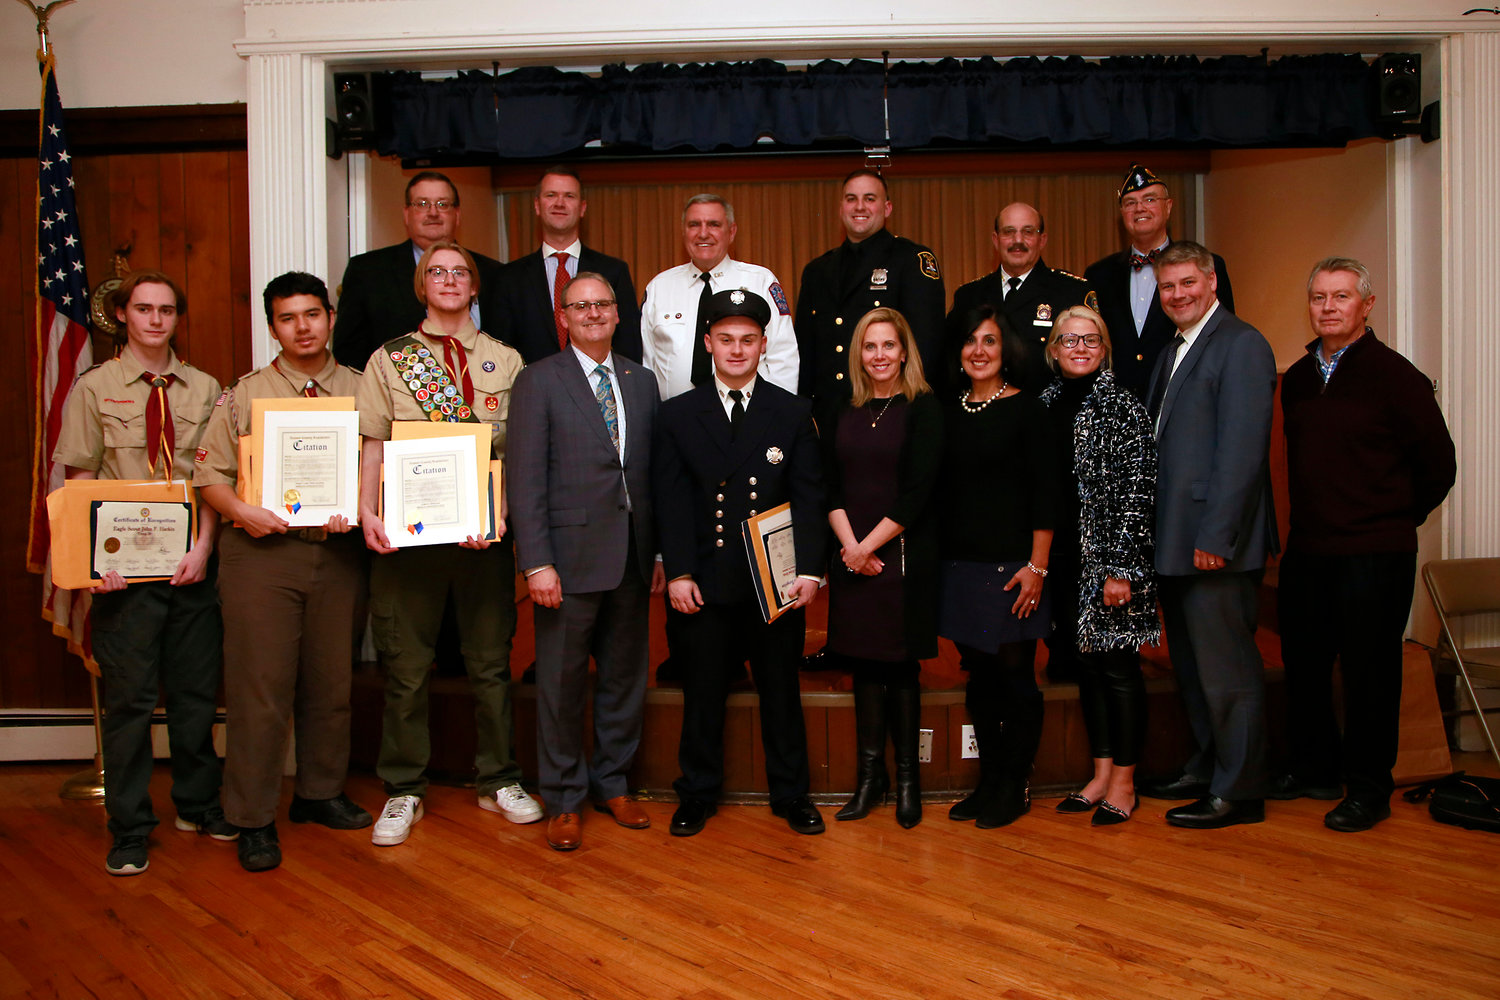 Local elected leaders and town officials joined honorees at Post 44's annual Law & Order Night.